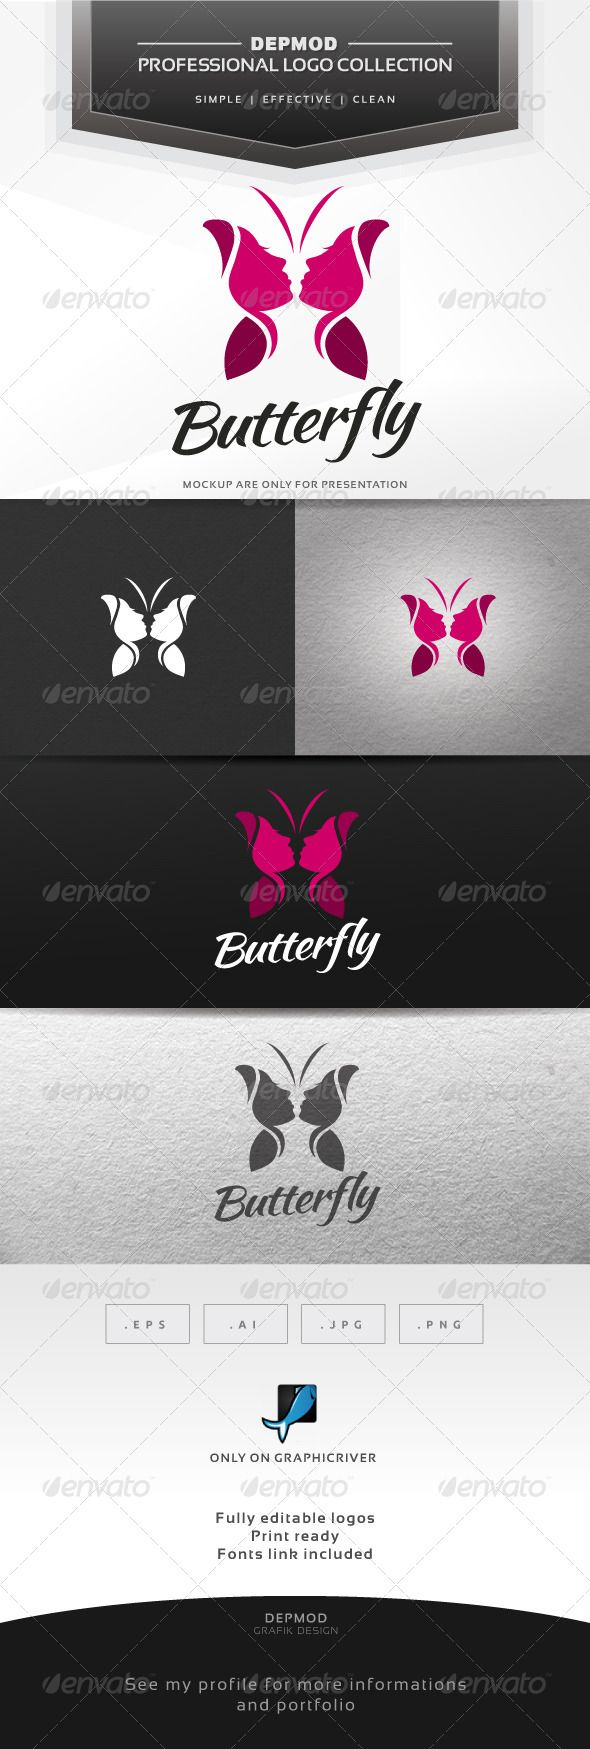 Logotype butterfly and letter b in different colour variants on a - Butterfly Logo